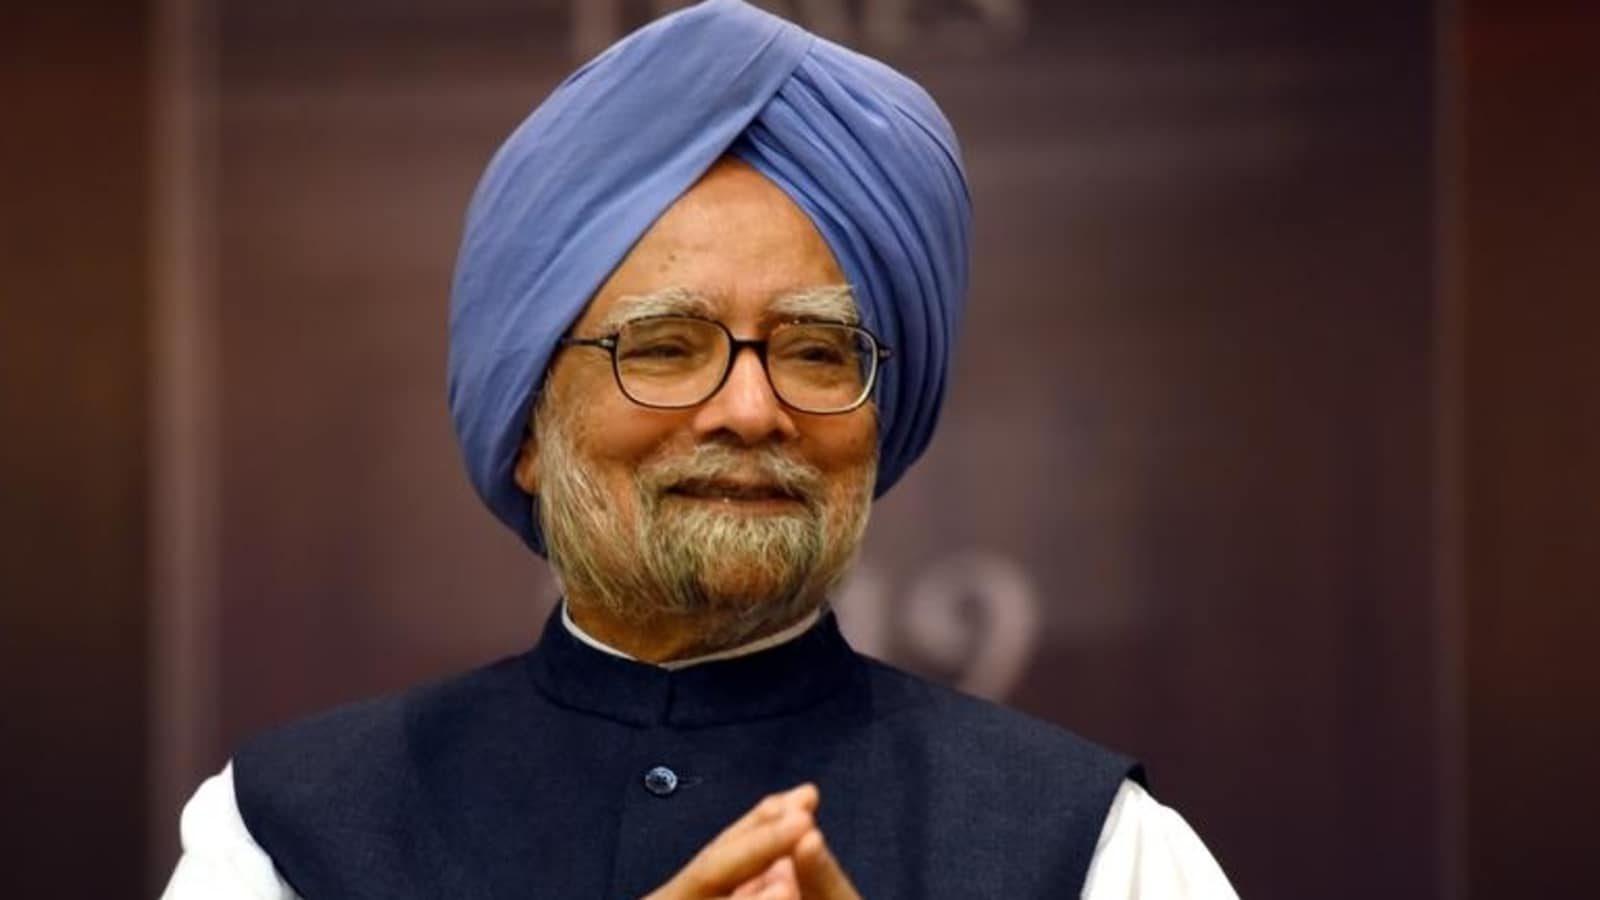 Manmohan Singh turns 89: Nation marks birthday of former prime minister    Latest News India - Hindustan Times